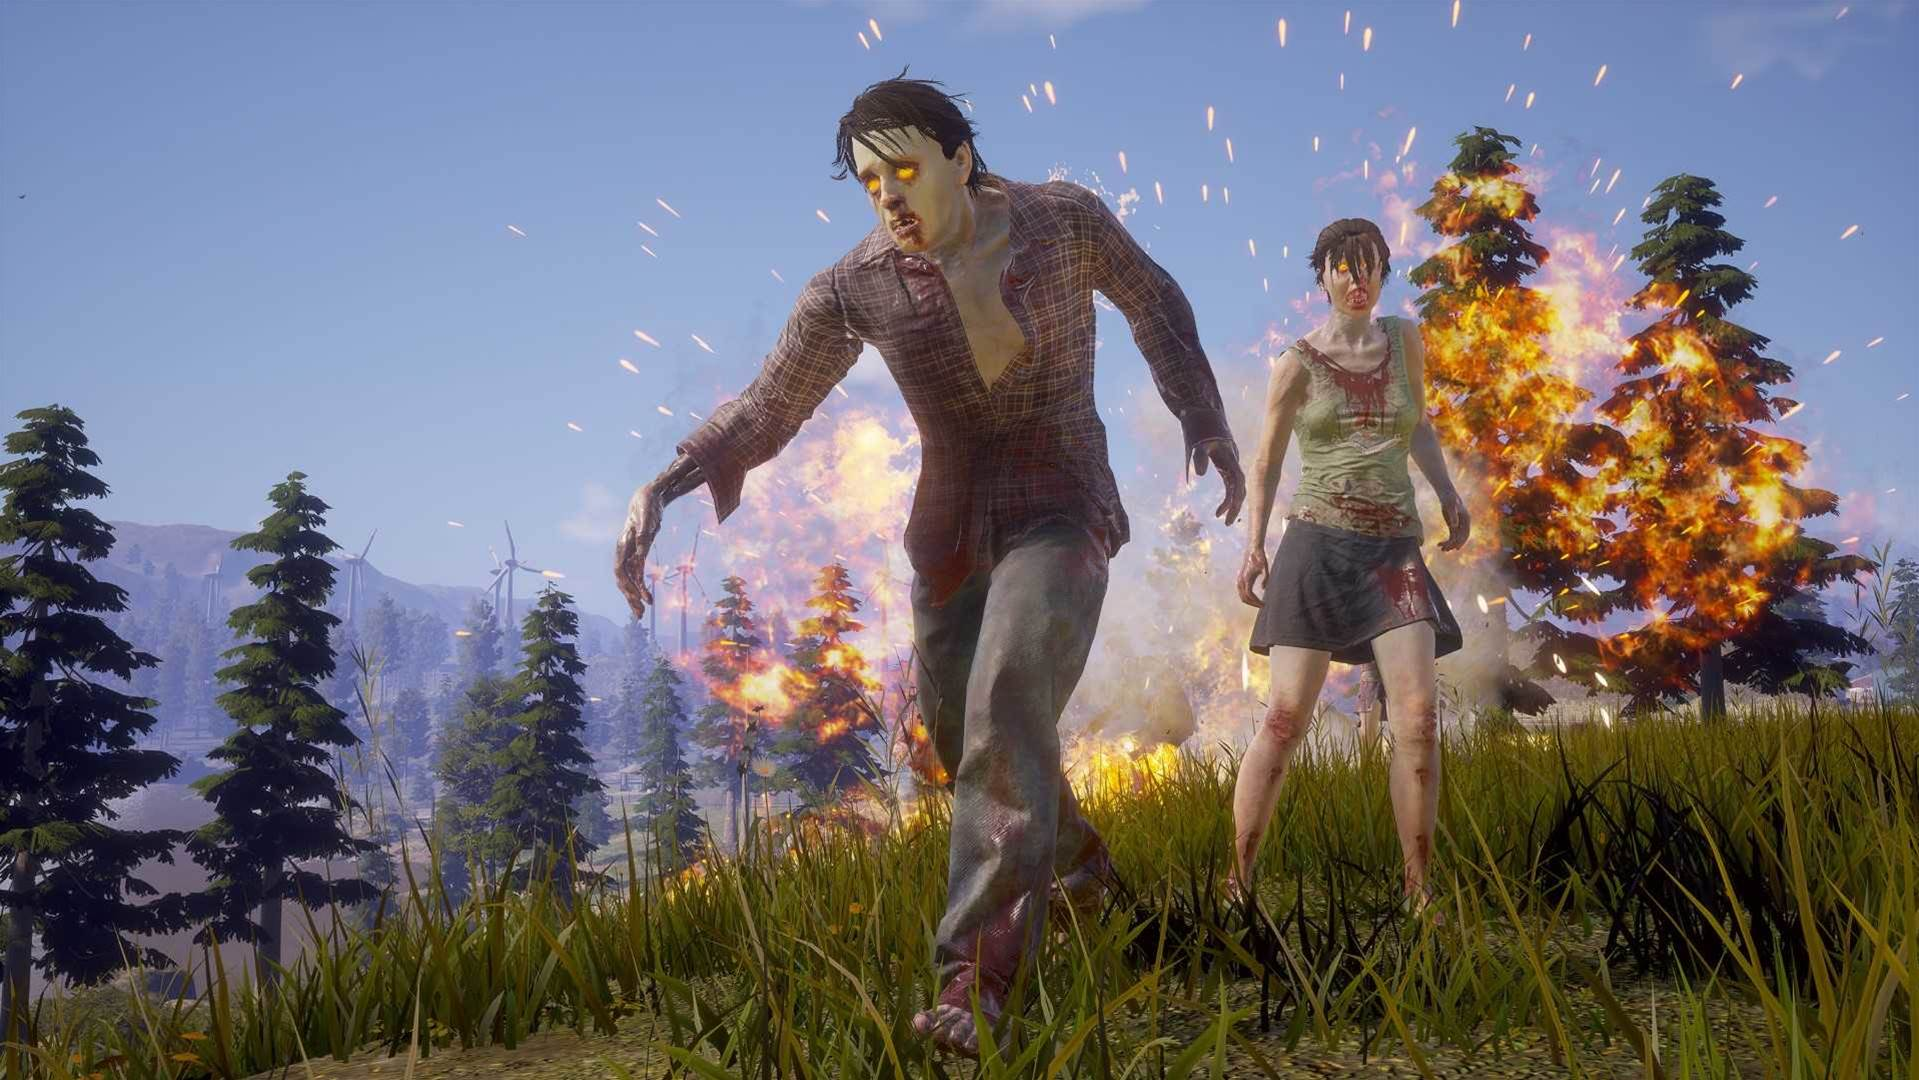 Feast on these State of Decay 2 screens